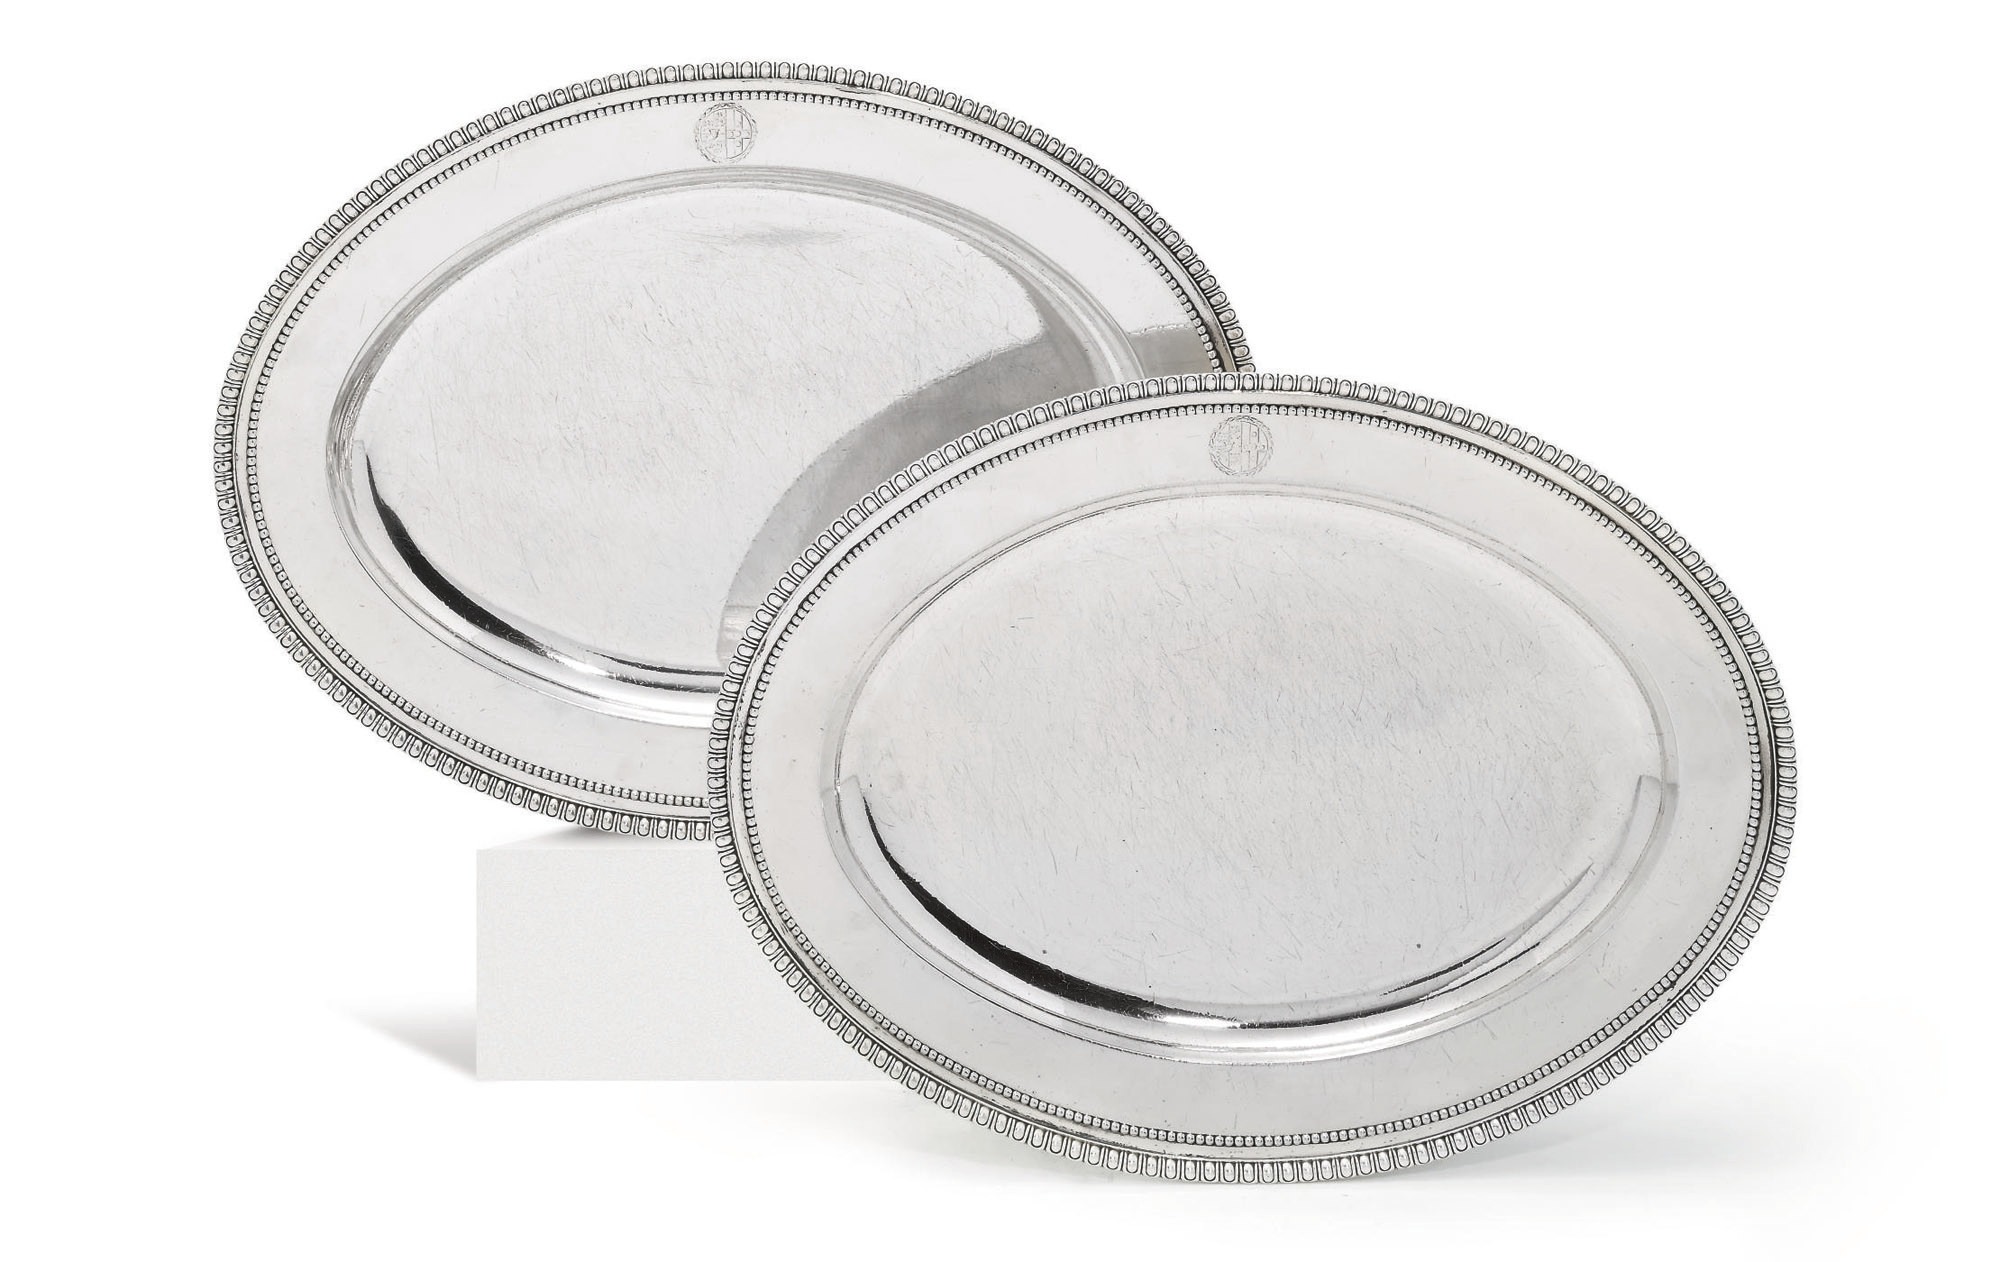 A PAIR OF GEORGE III SILVER MEAT-DISHES FROM THE WATKIN WILLIAMS-WYNN SERVICE ORDERED FOR 20 ST. JAMES'S SQUARE